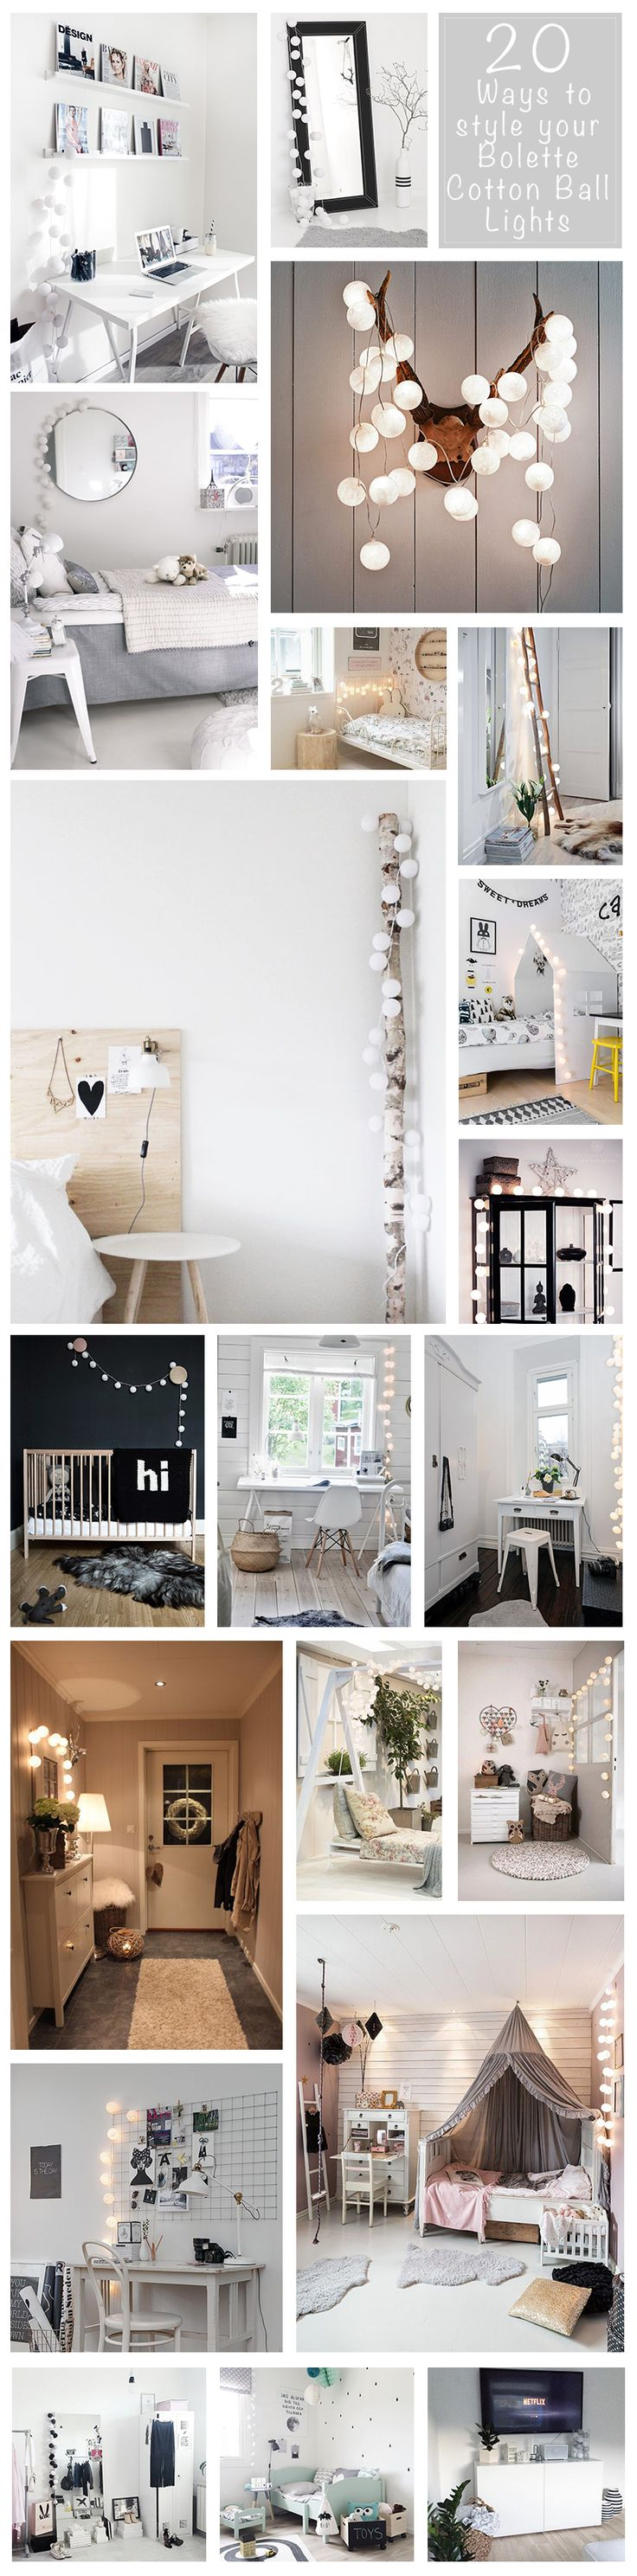 20 Ways to style your Bolette Cotton Ball Lights